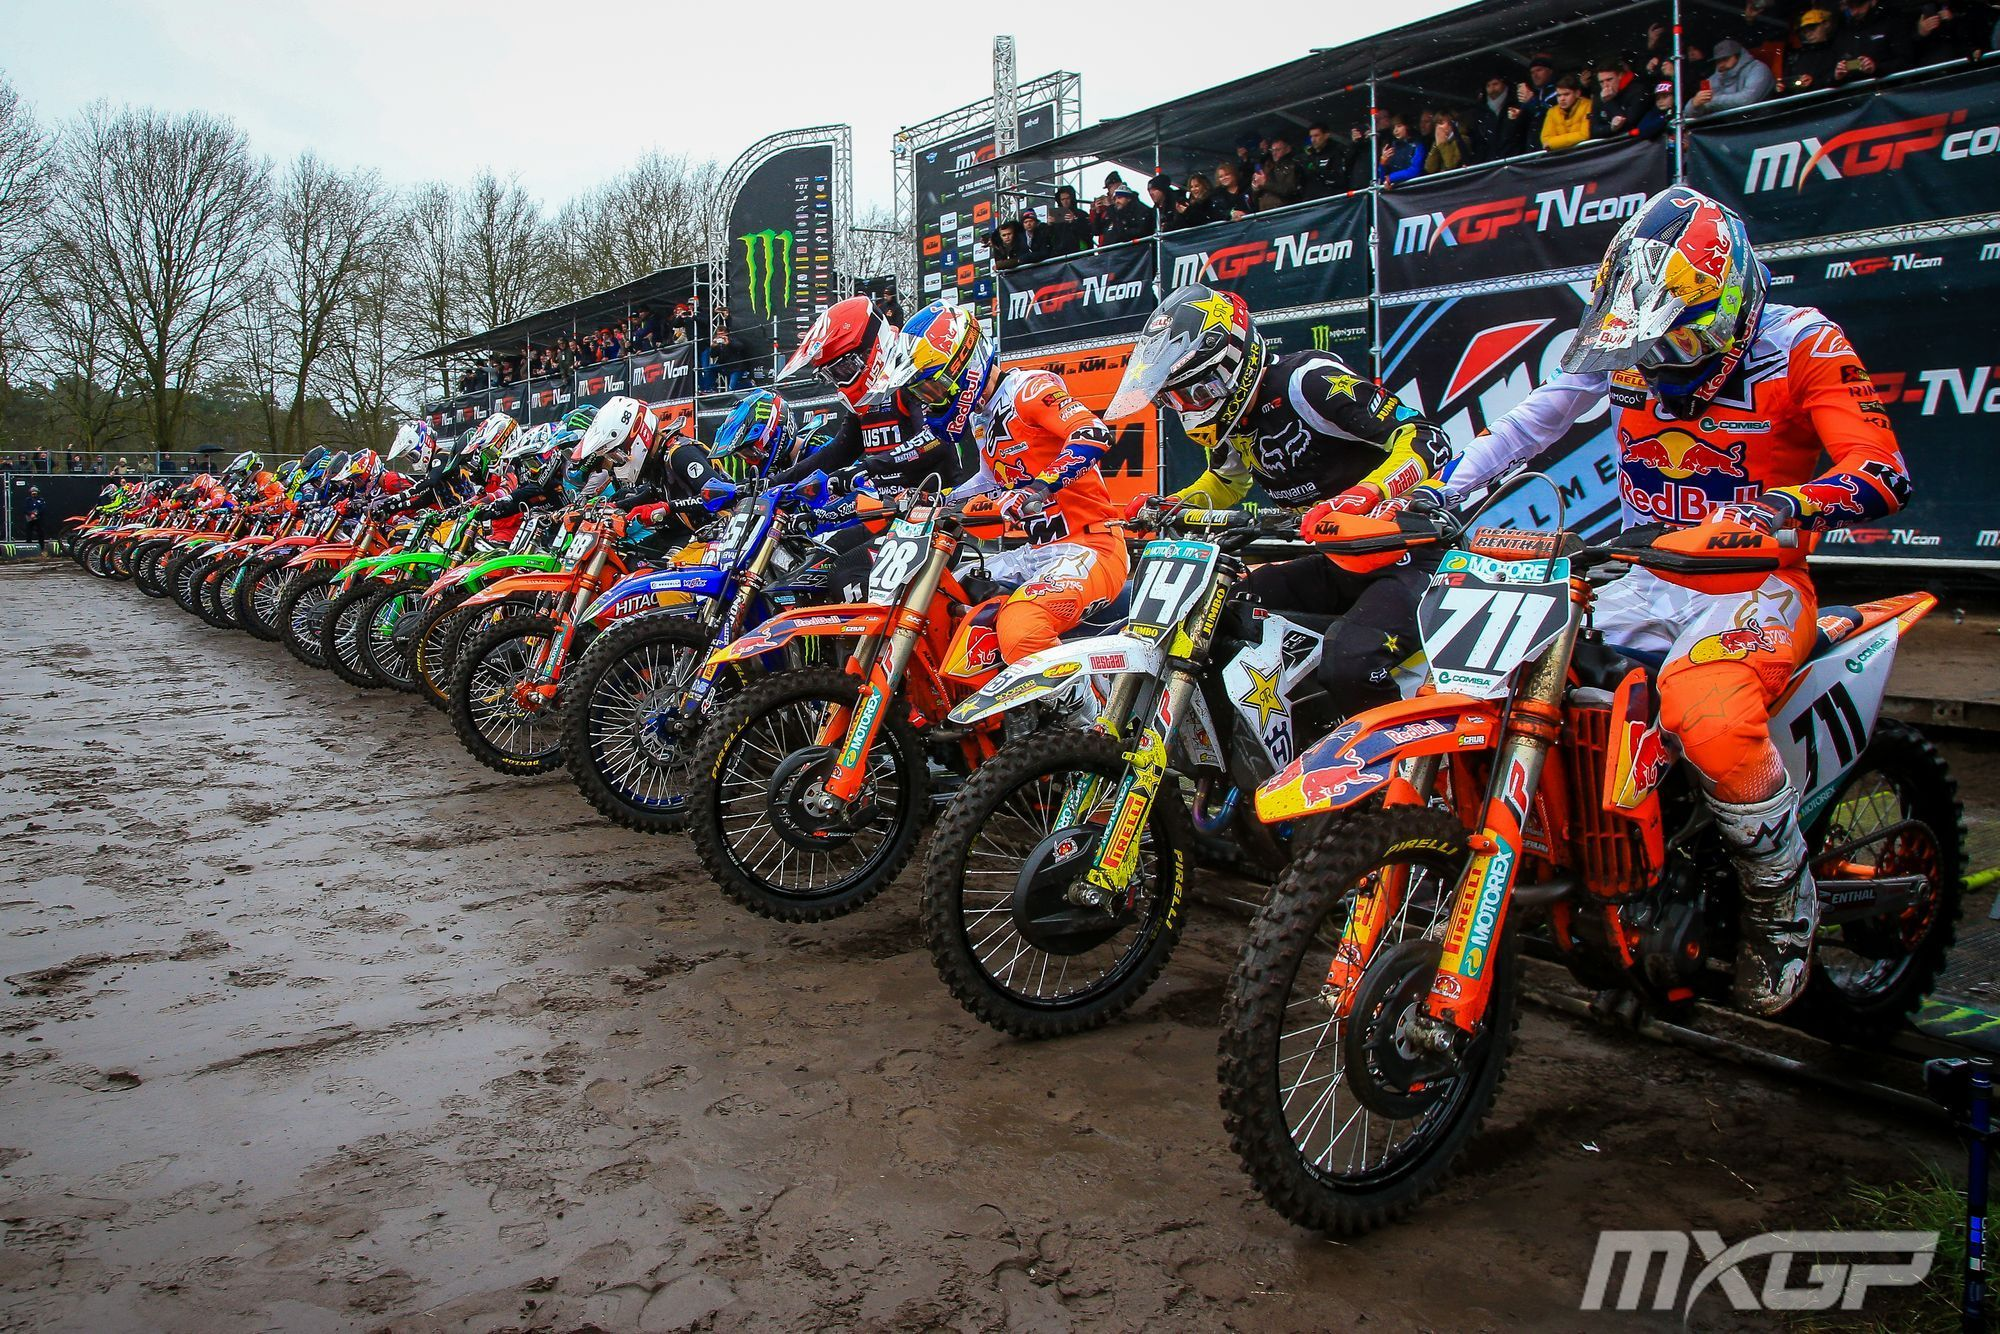 START-MX2-MOTOCROSS-GP-2-NL-2020.jpg#asset:27495